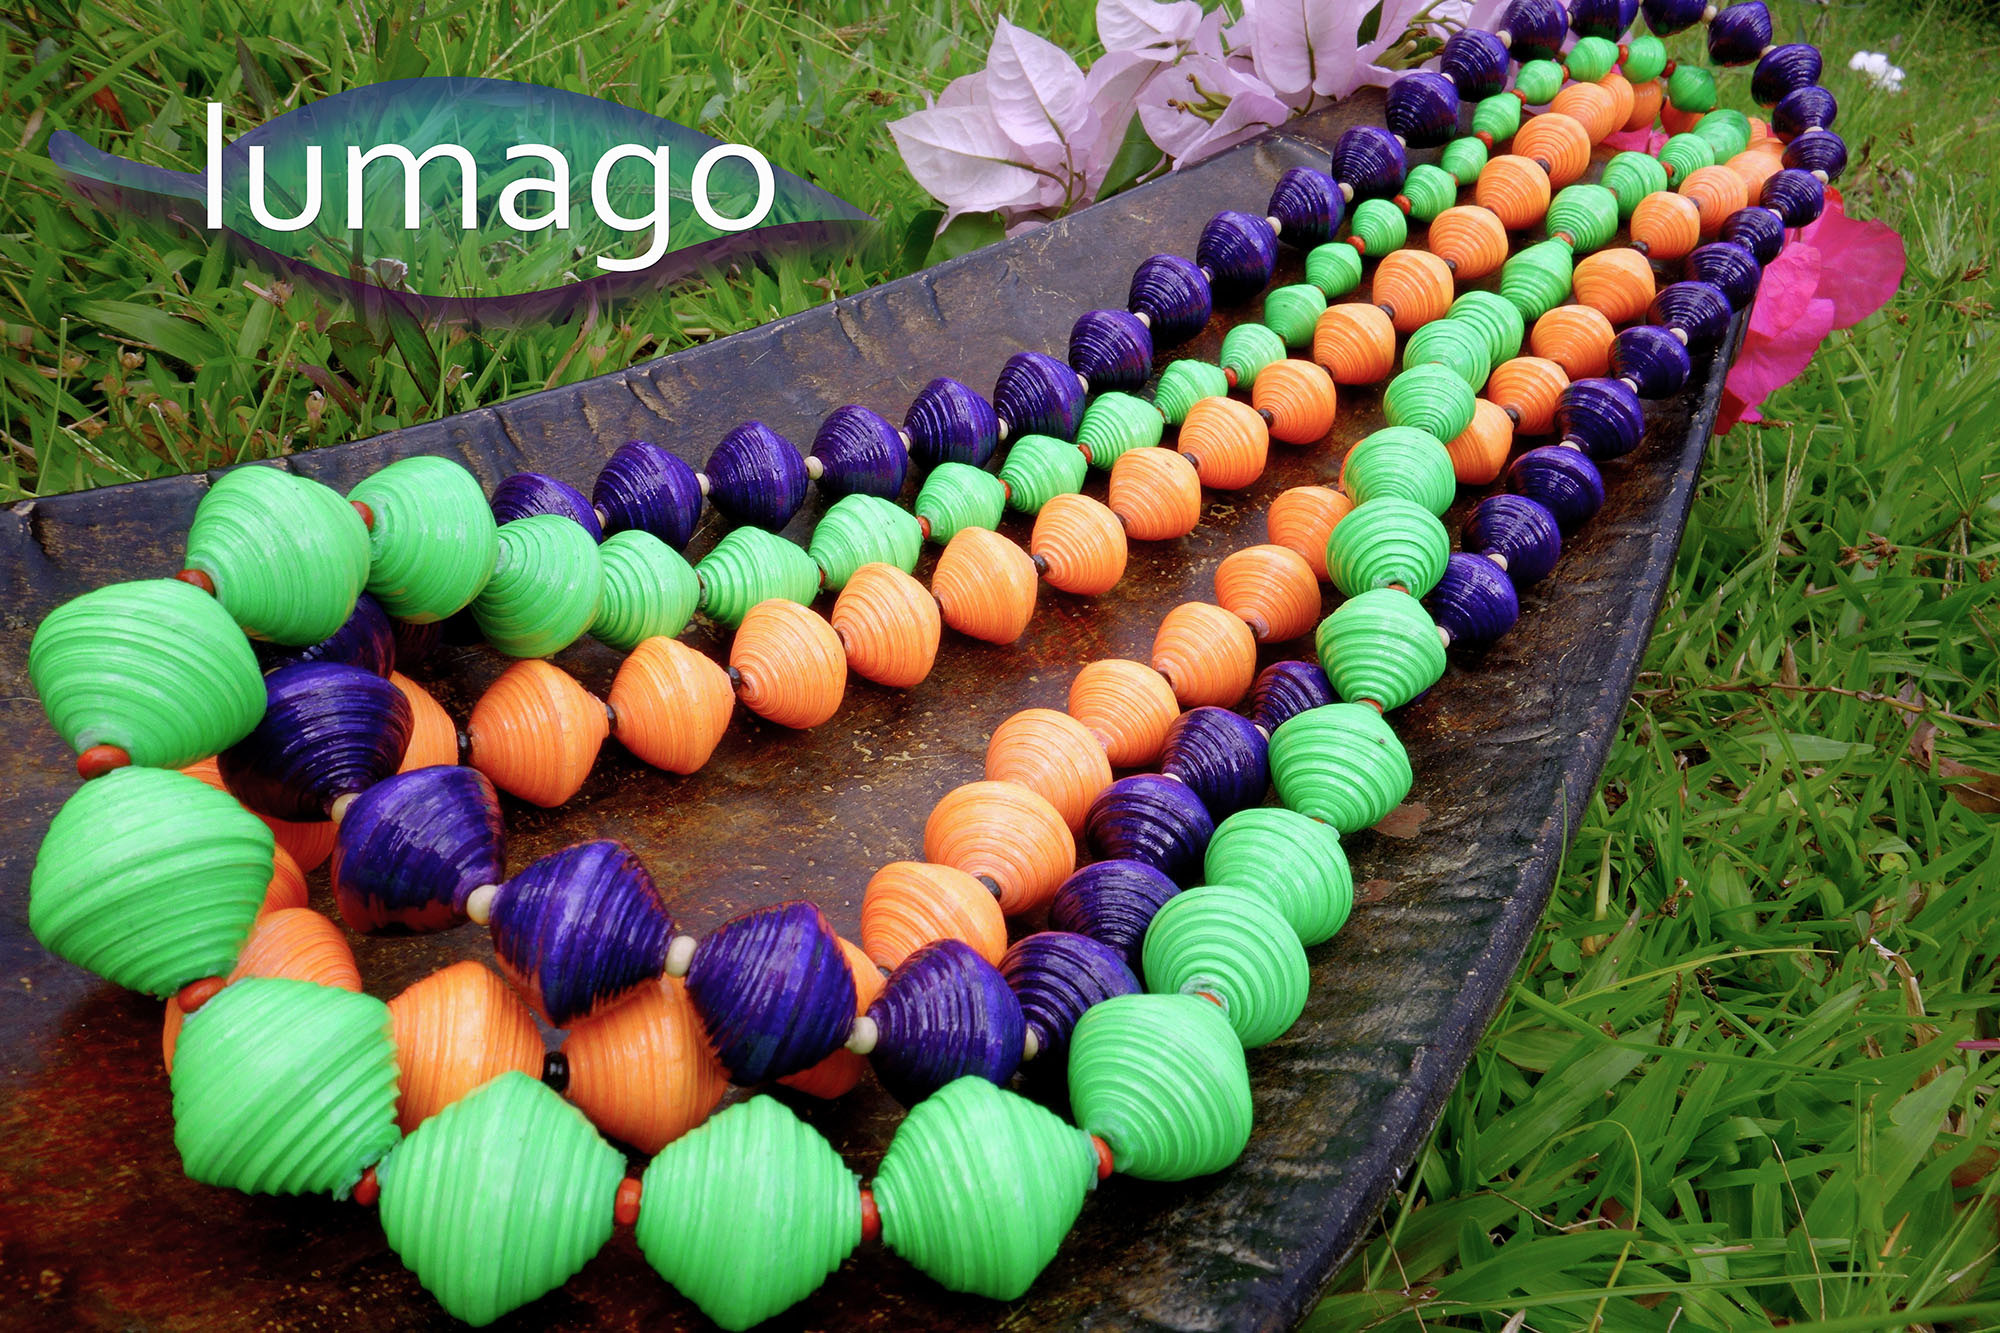 Recycled / upcycled paper bead jewlery from Lumago Designs in Dumaguete Philippines